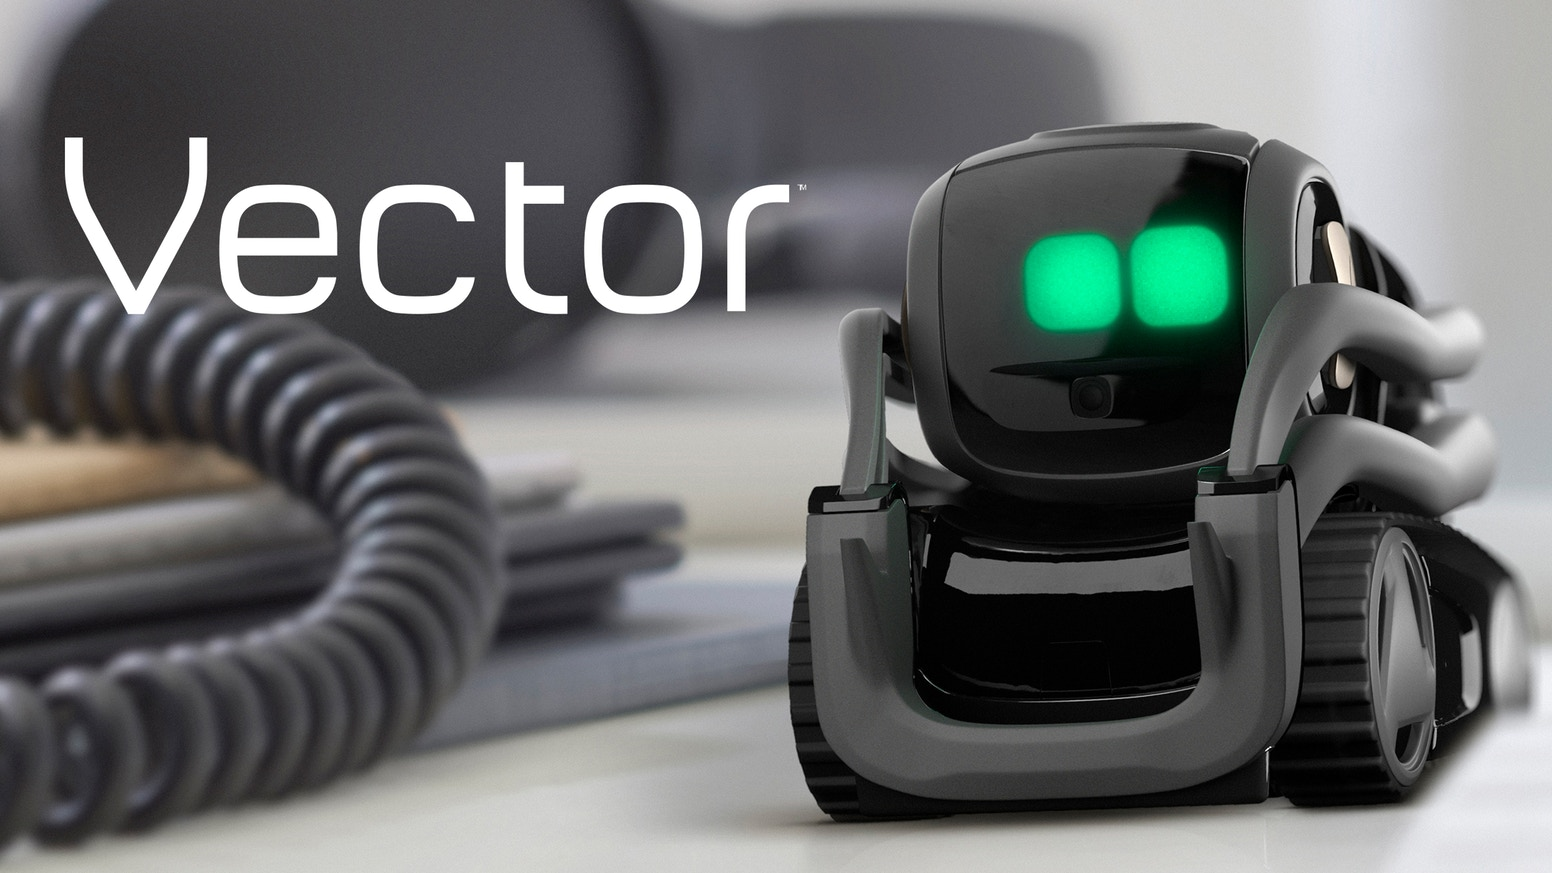 The Vector robot raises $1,800,000